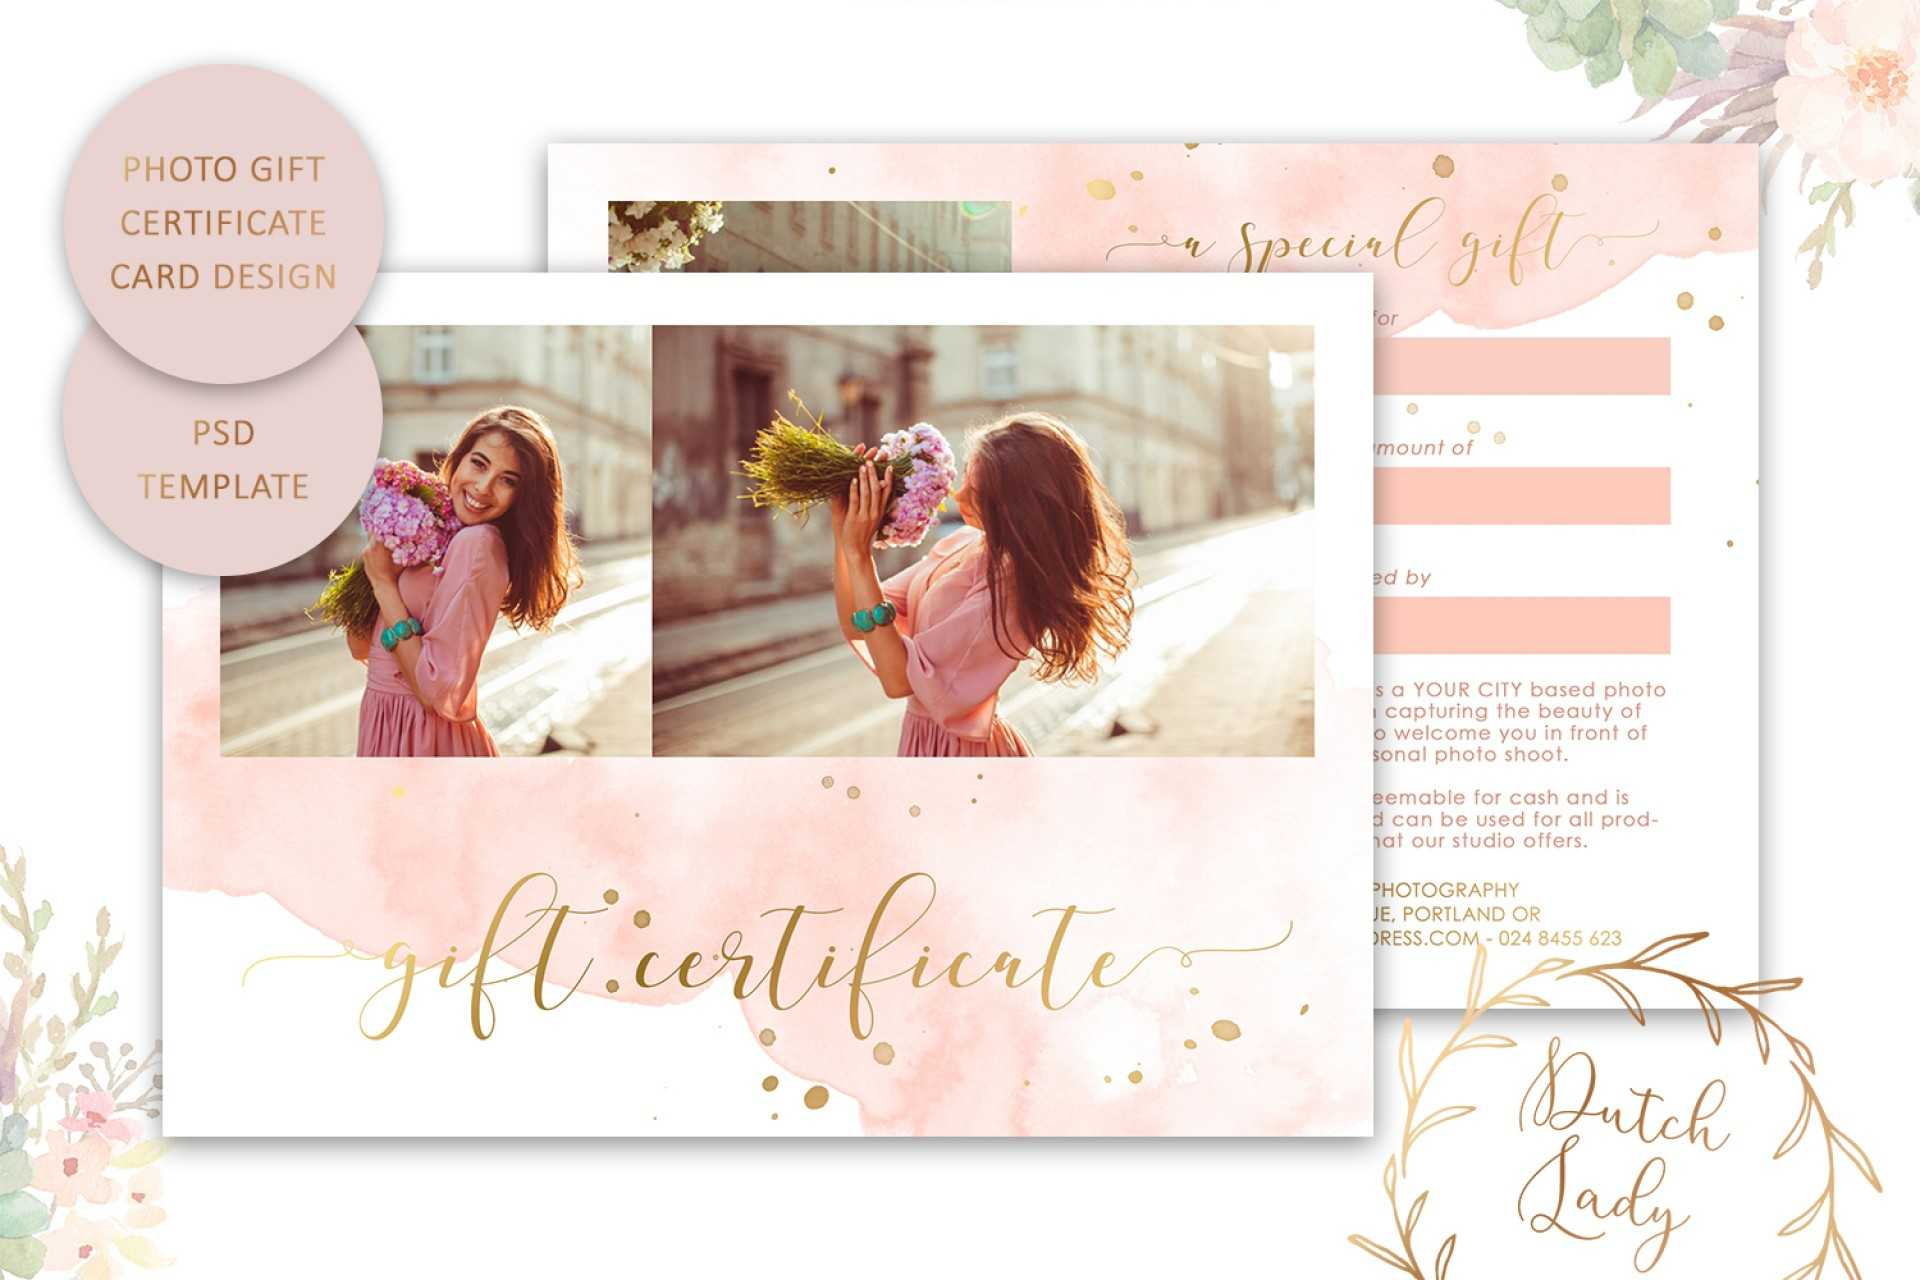 003 Photo Session Gift Certificate Template Free Impressive With Photoshoot Gift Certificate Template